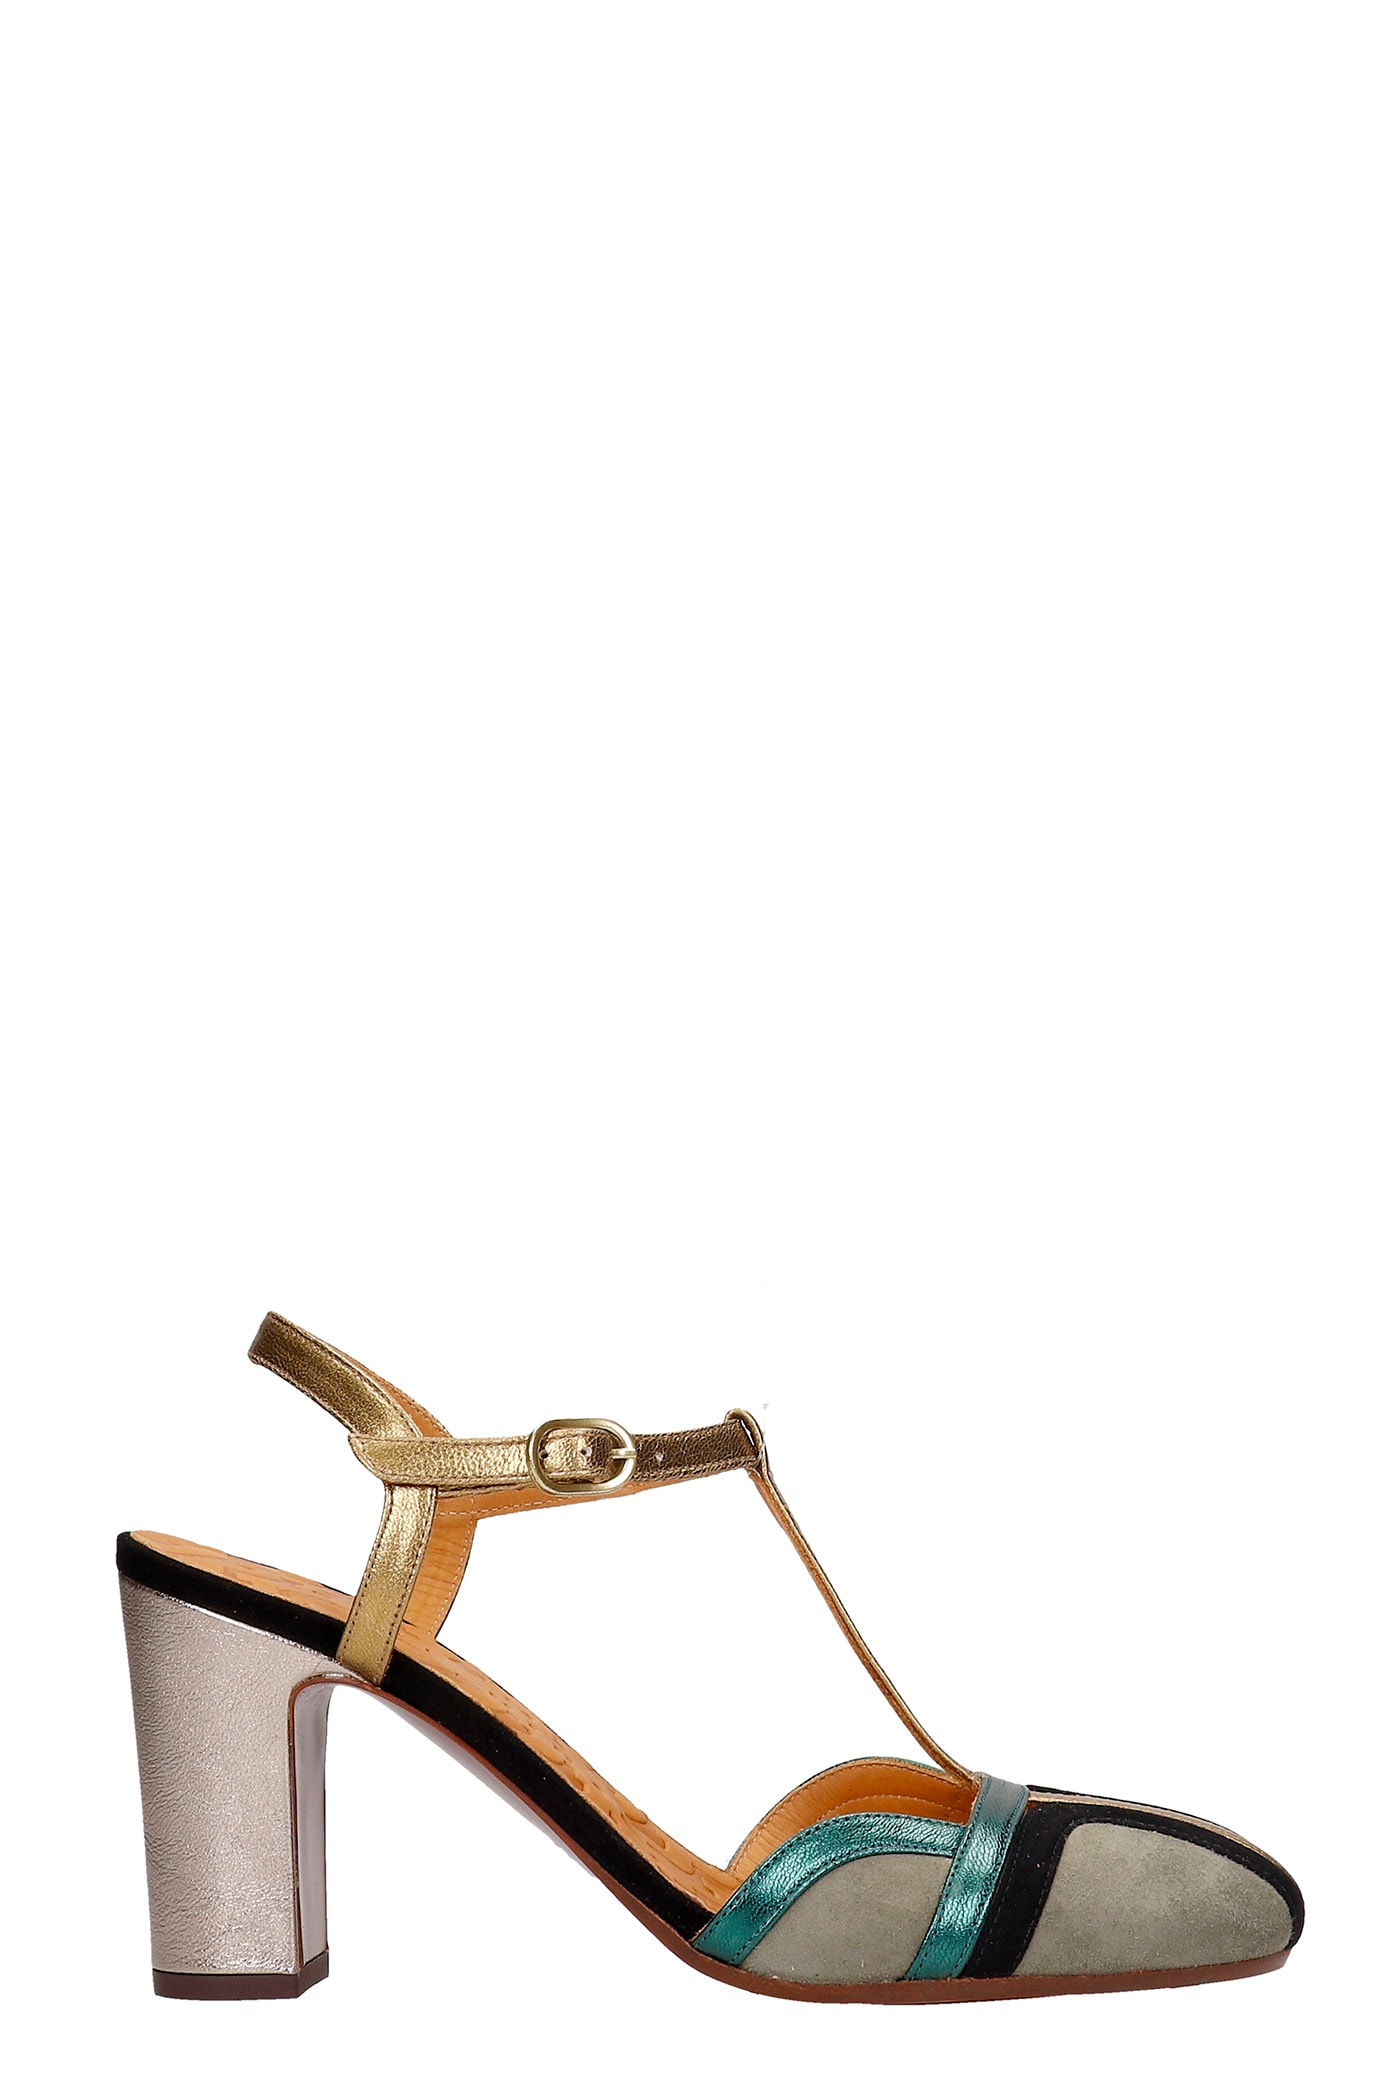 Chie Mihara INMA SANDALS IN BRONZE LEATHER